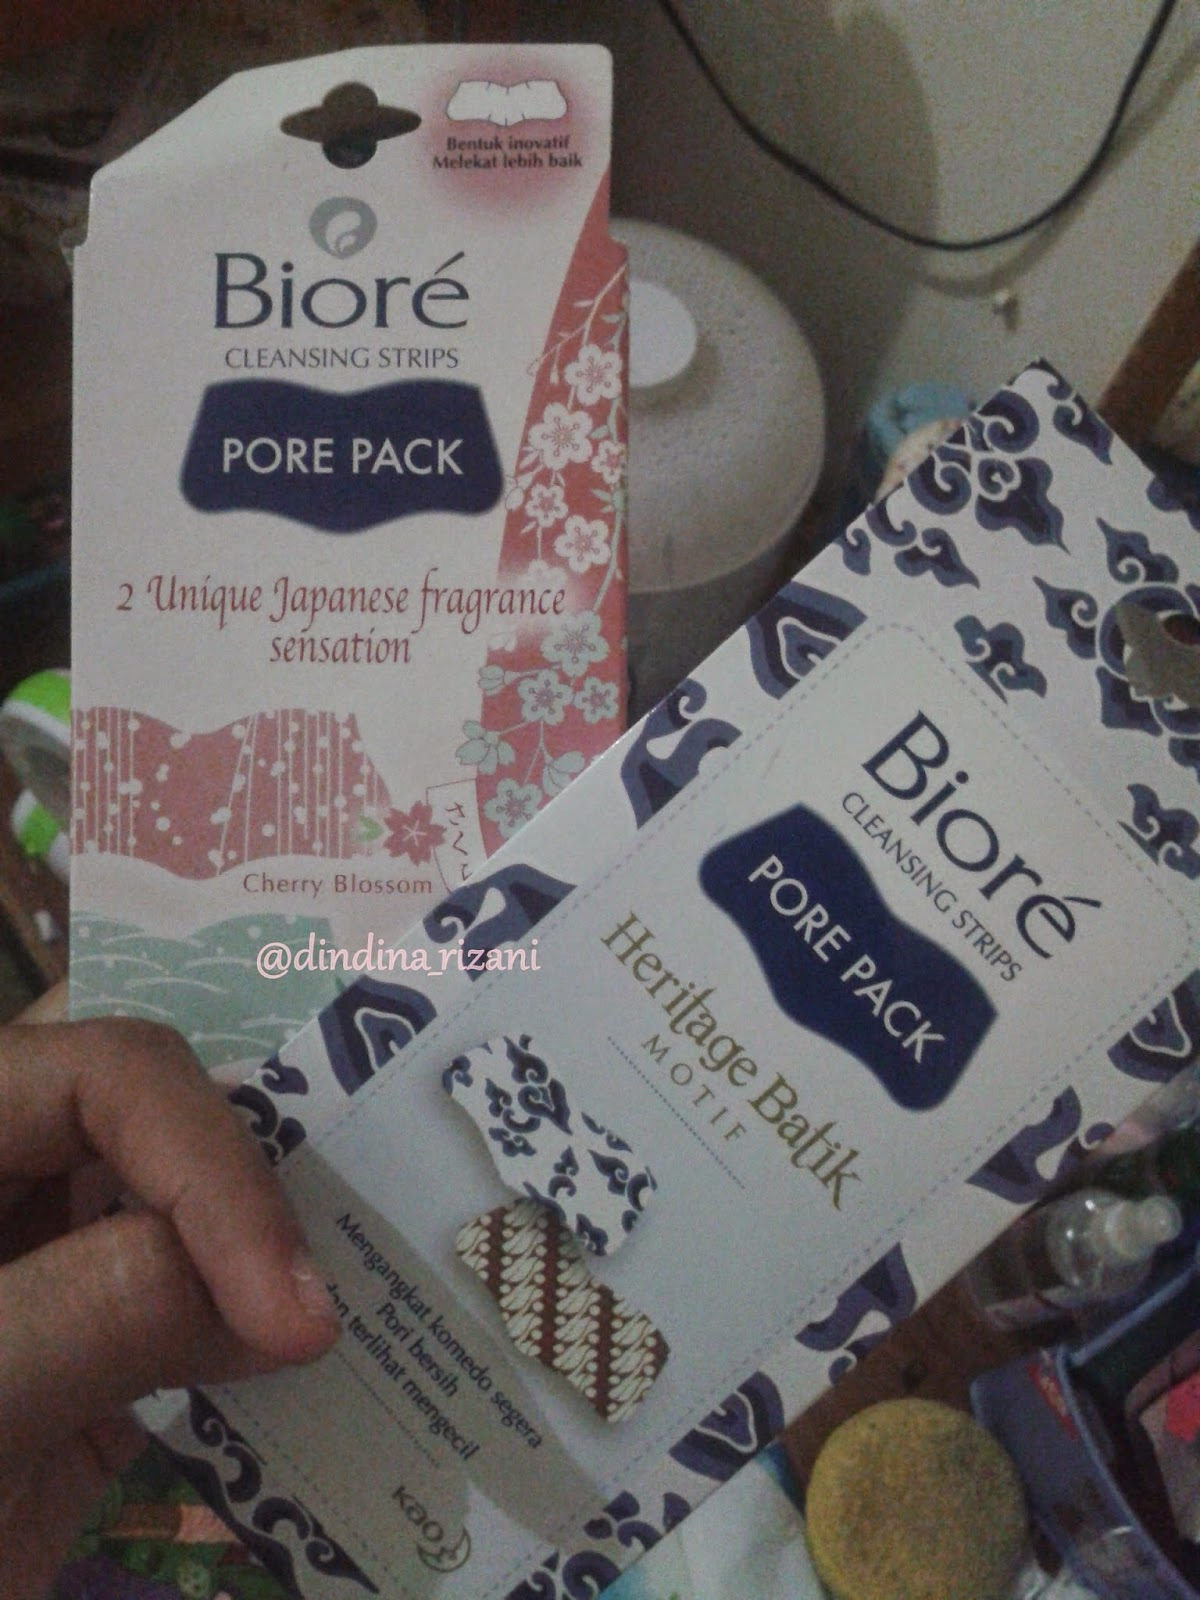 Biore Pore Pack (Review)